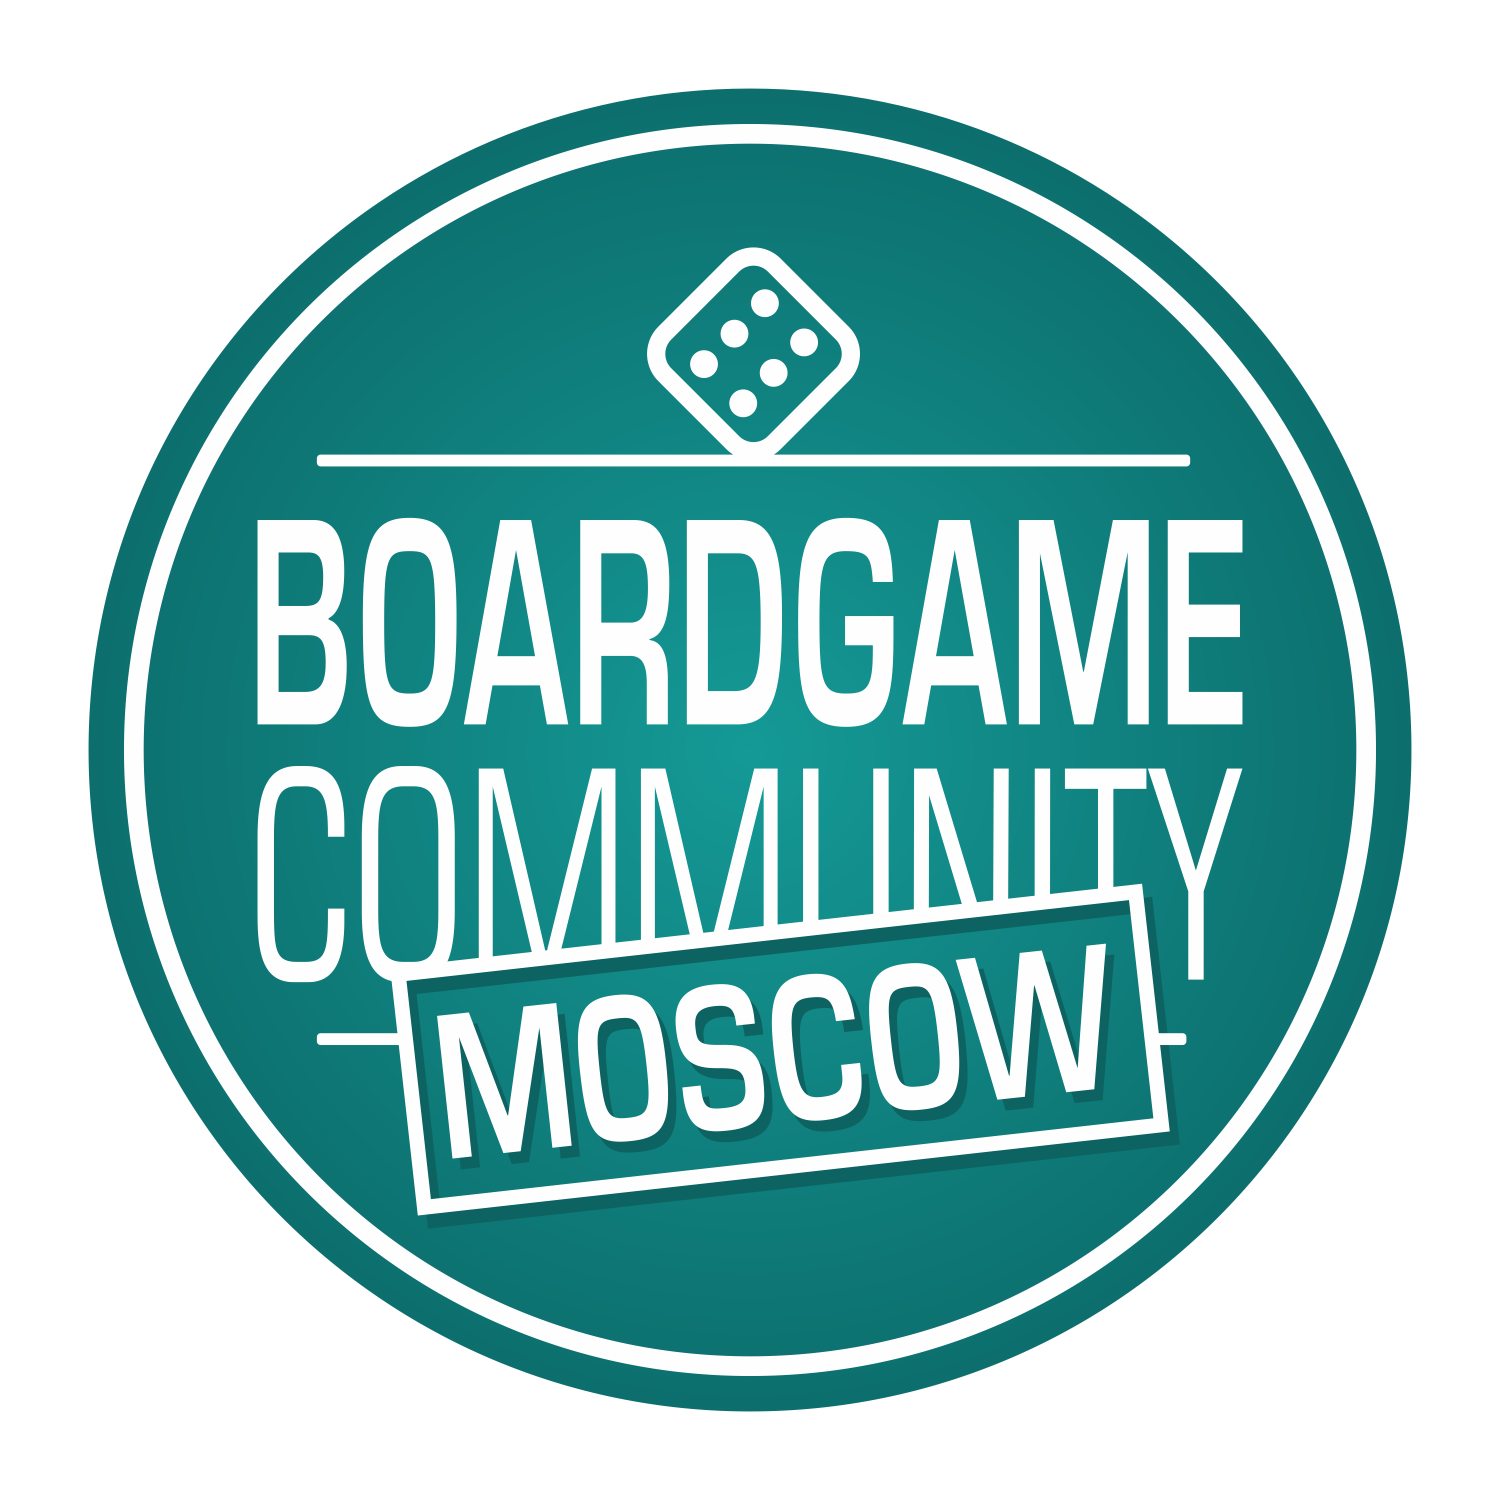 Board Game Community Moscow